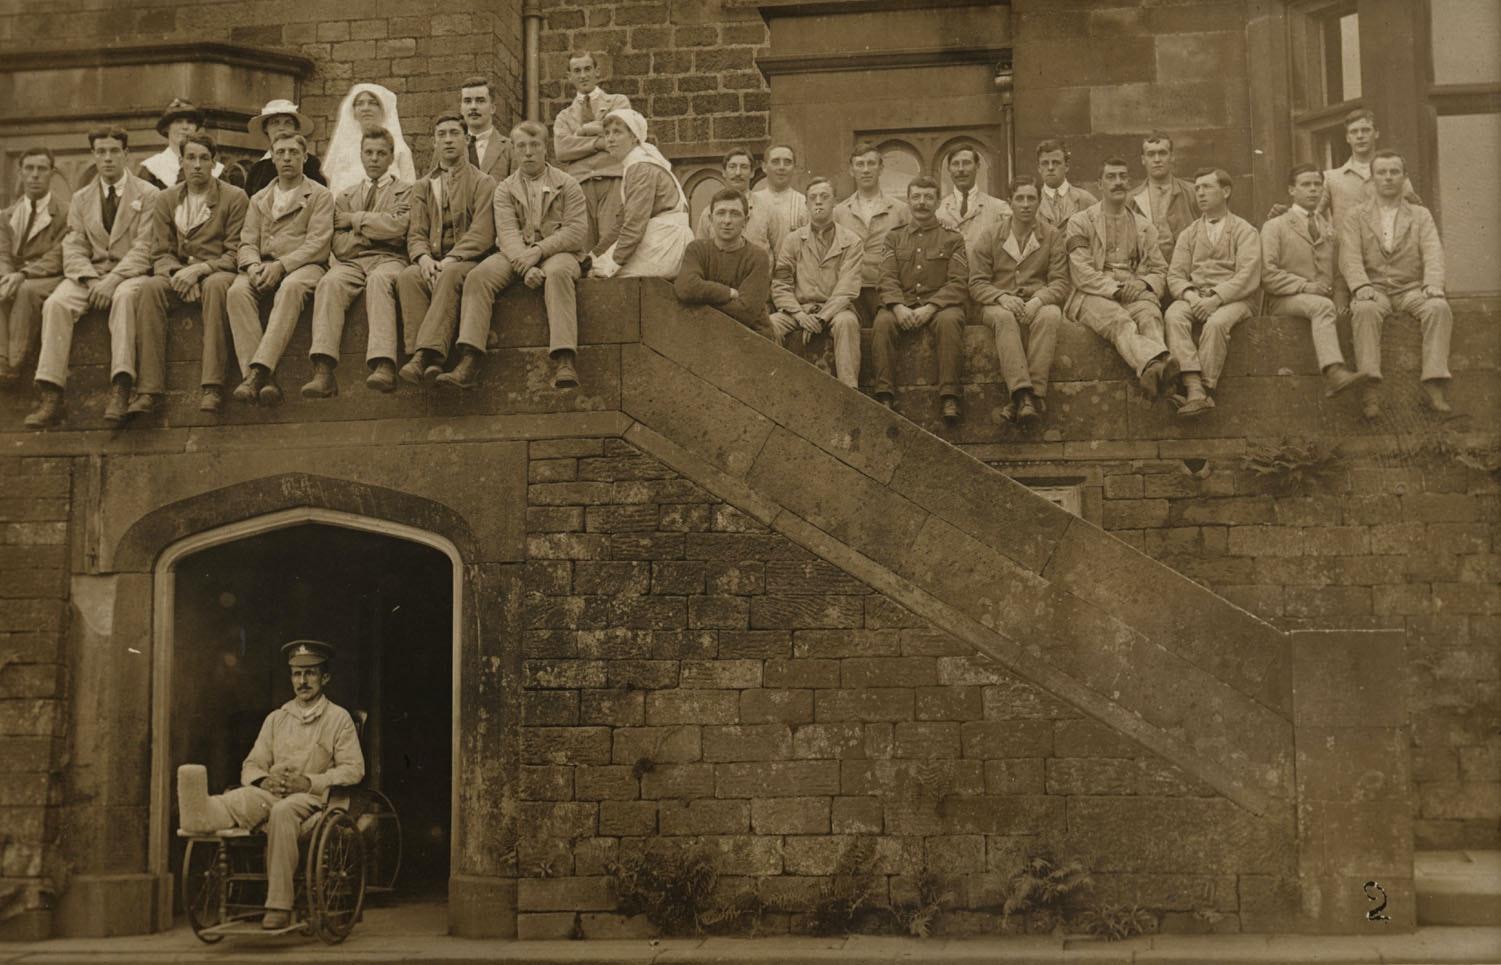 Longshaw Lodge Convalescent Home for Wounded Soldiers, Grindleford, near Sheffield. Credit: Tyne & Wear Archives & Museums